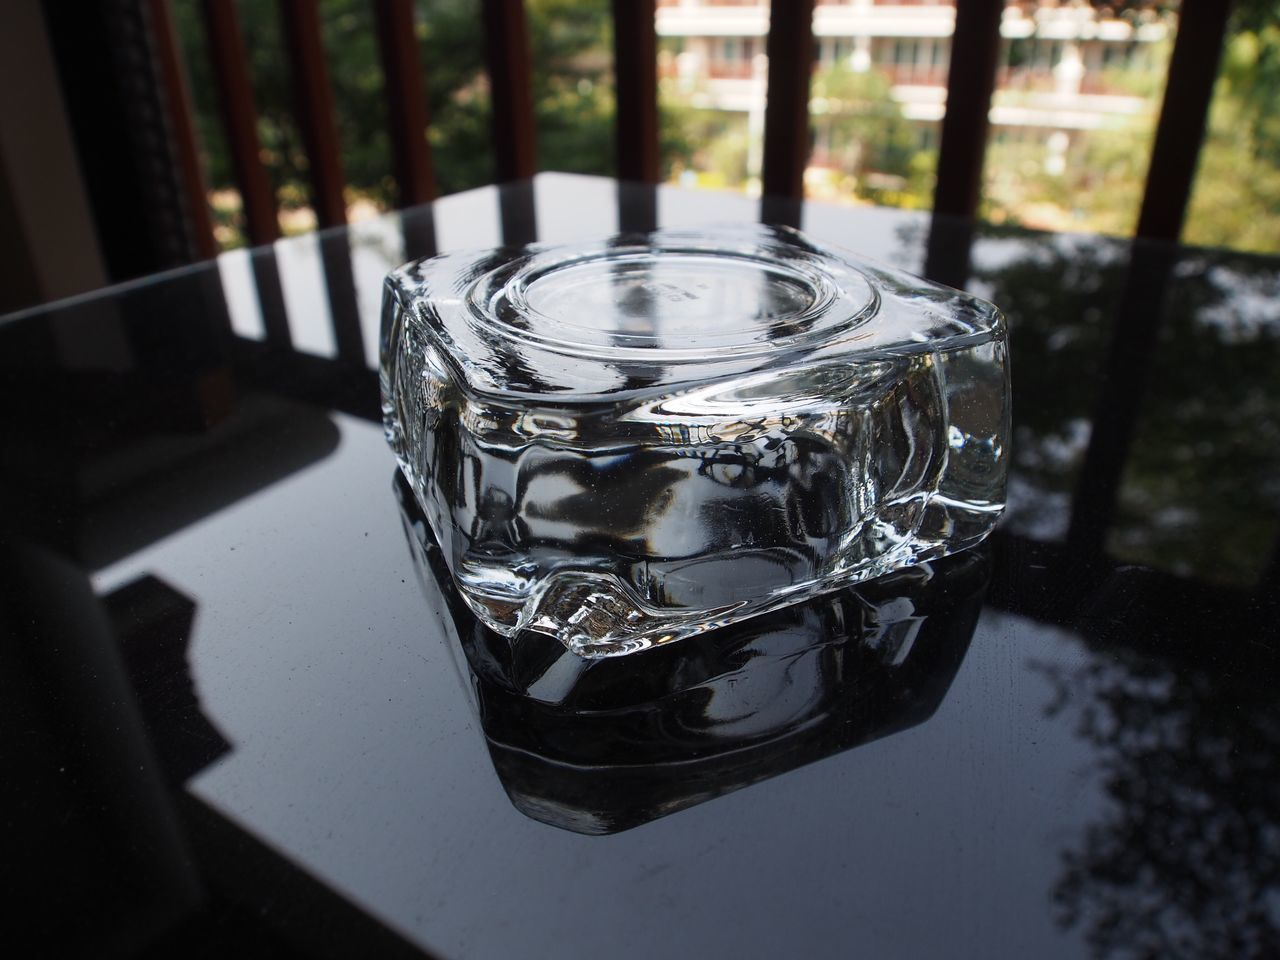 Ashtray Transparent Ashtray Table Close-up No People Indoors  Day Smoke Transparent Freshness Black Table Cigarette Time Cigarette Break Cigar Smoking Cigar Time Cigarsociety Ashtray On Black Table